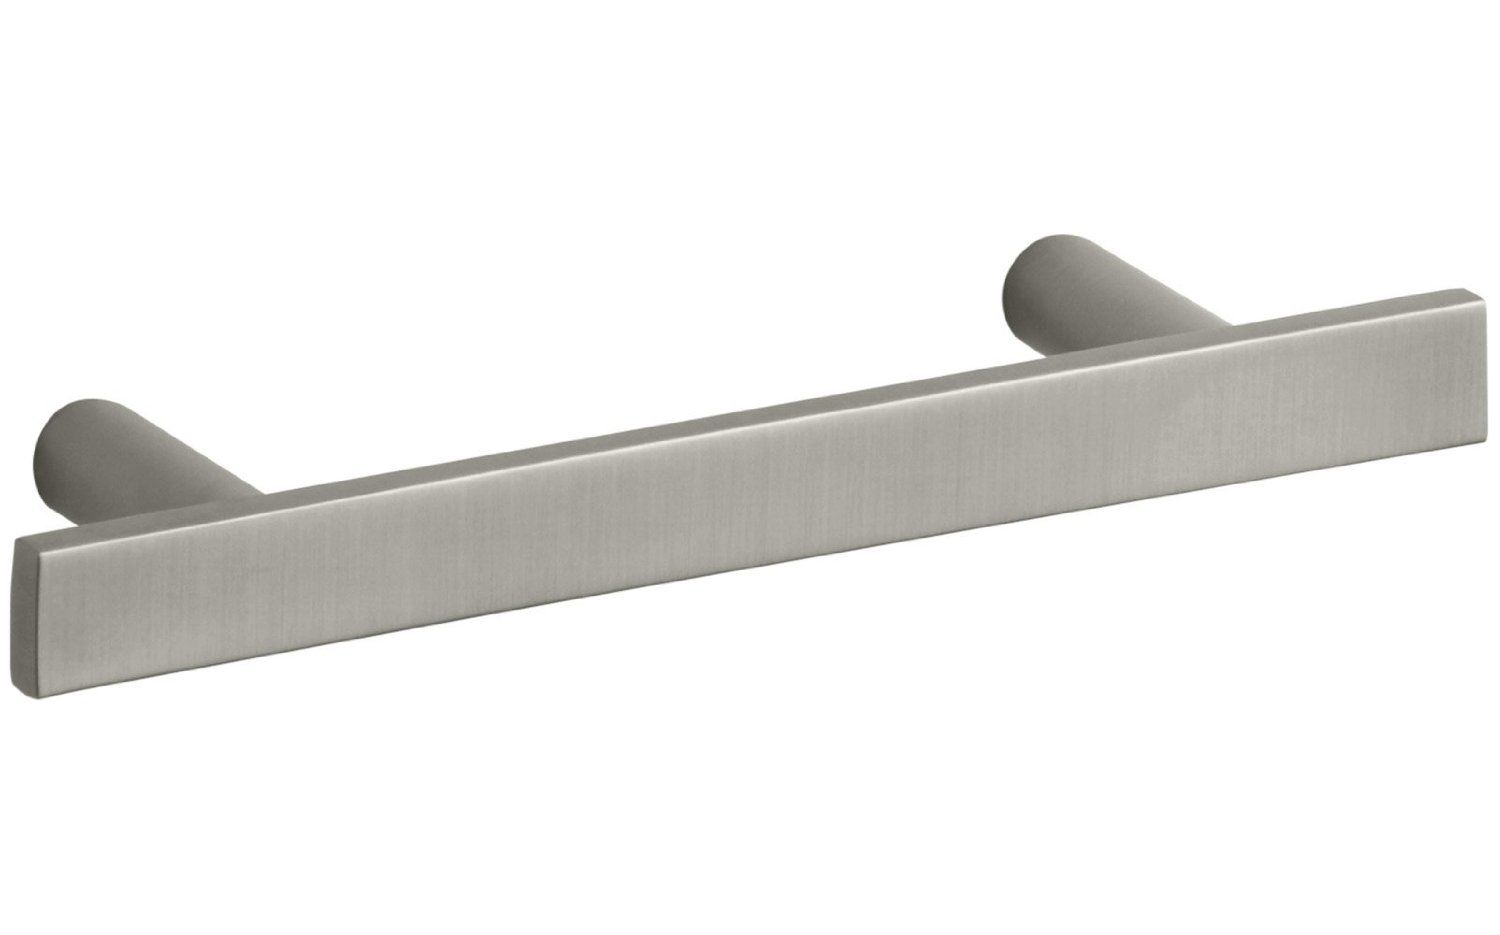 Kohler K 14386 Bn Stillness 3 Drawer Pull Vibrant Brushed Nickel Cabinet And Furniture Pulls Amazon Com Furniture Pulls Kohler Drawer Pulls